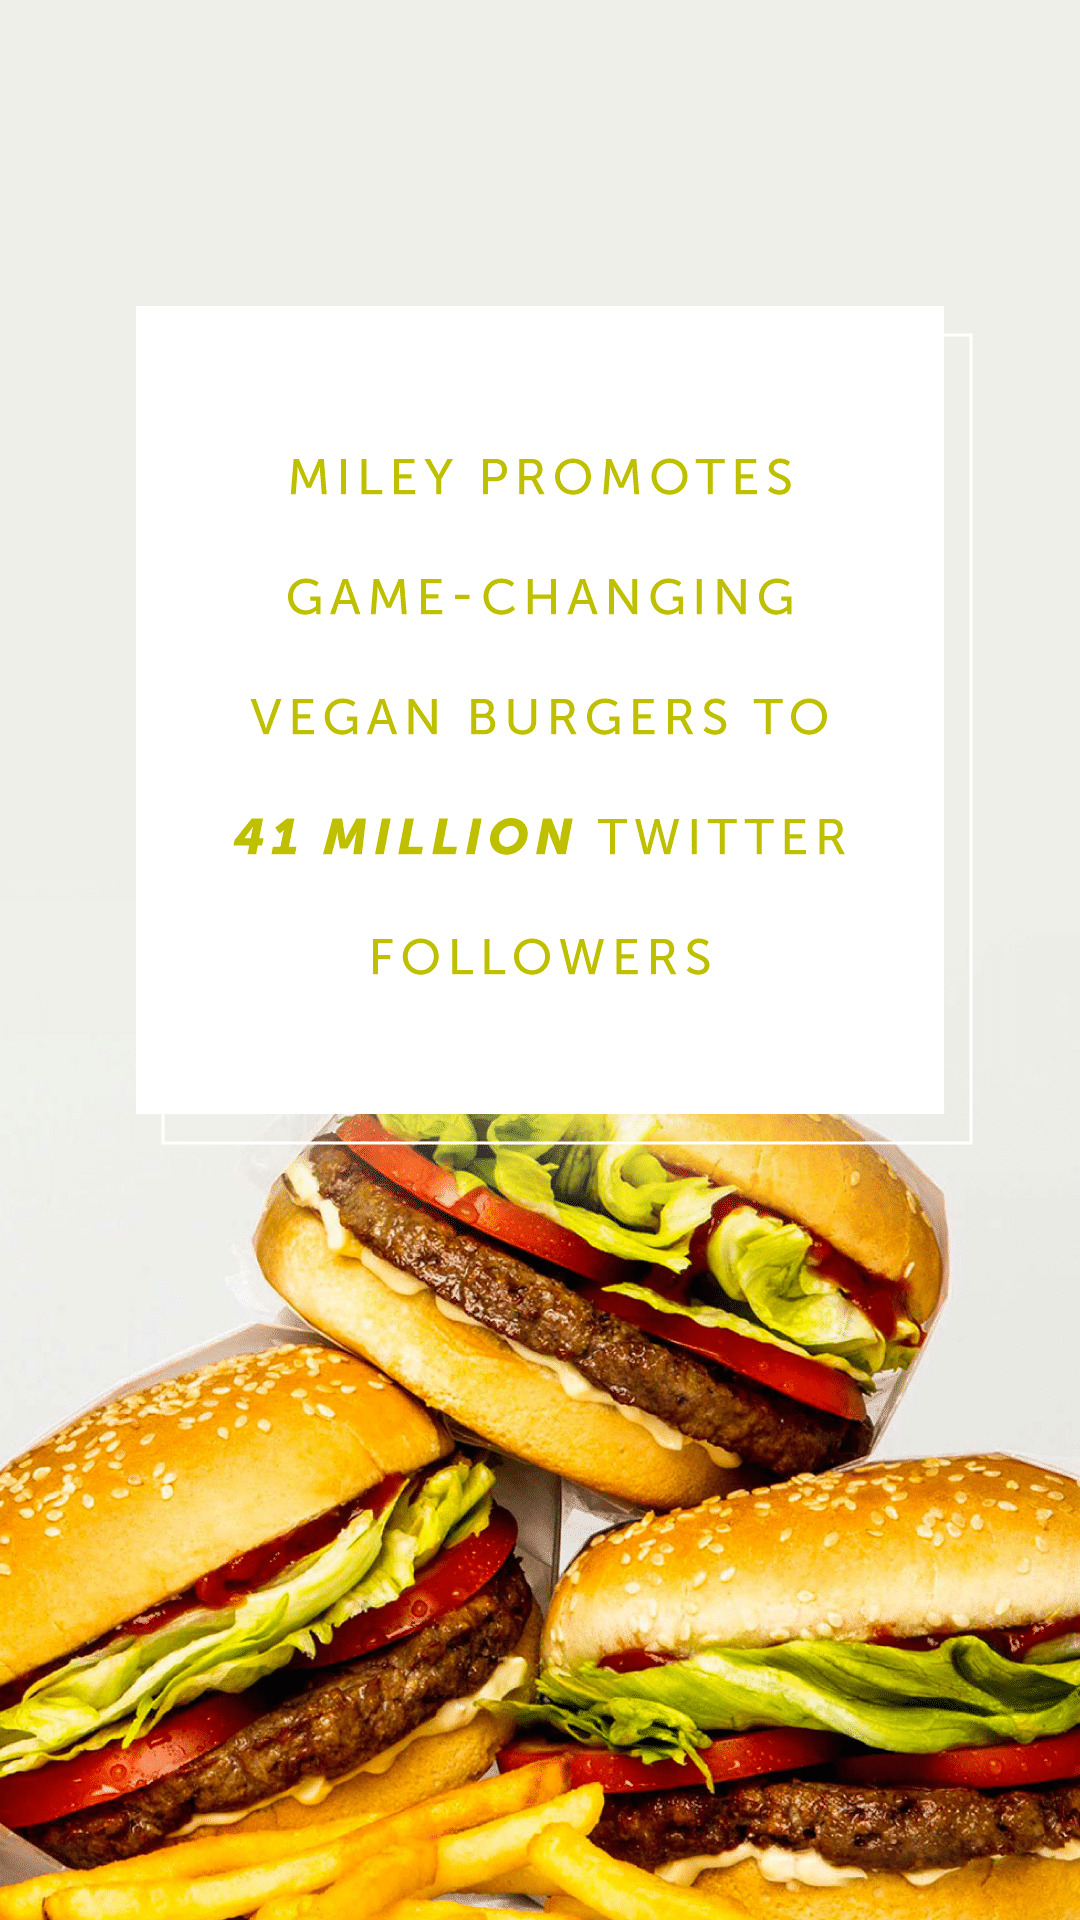 Miley Promotes Game-Changing Vegan Burgers to 41 Million Twitter Followers